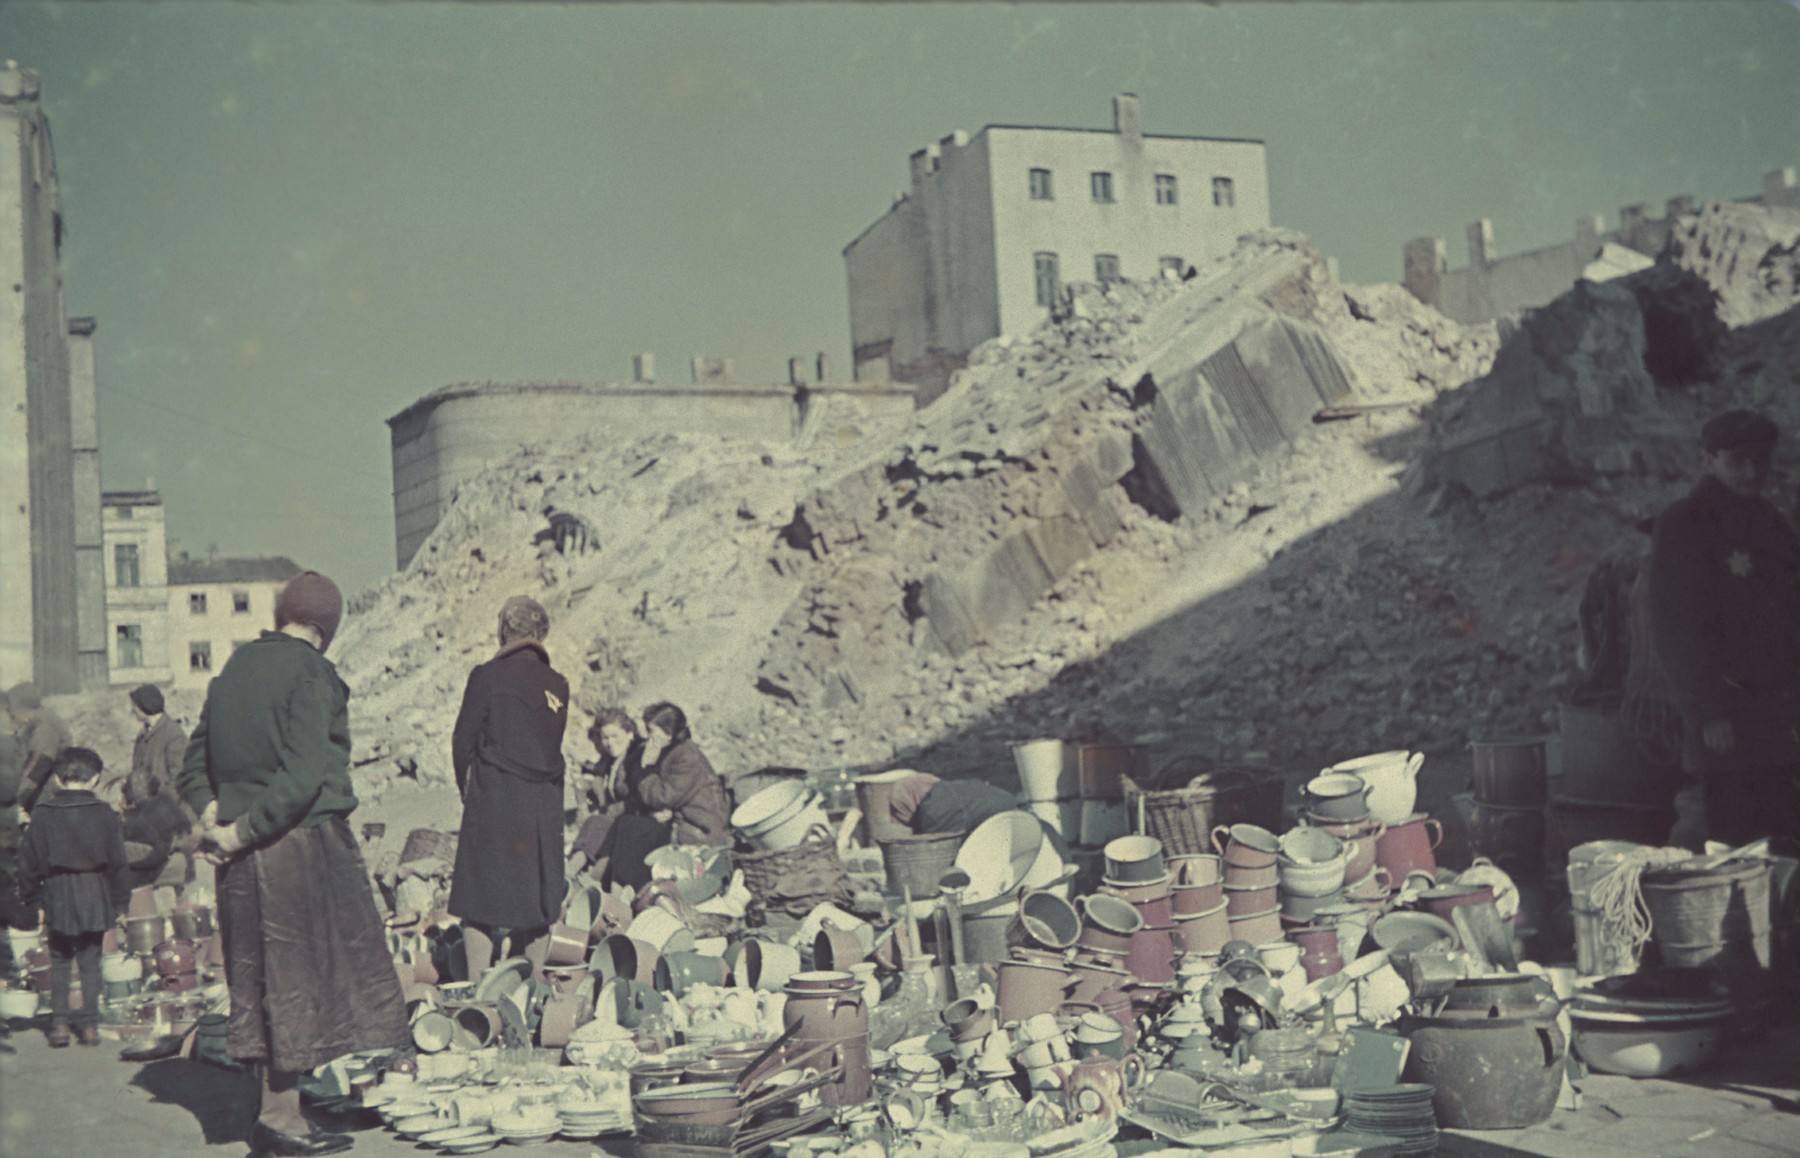 """Jewish women inspect old pots and crockery in [what probably is a market] in the Lodz ghetto.  Original German caption: """"Strassenbild"""" (street scene), #53."""